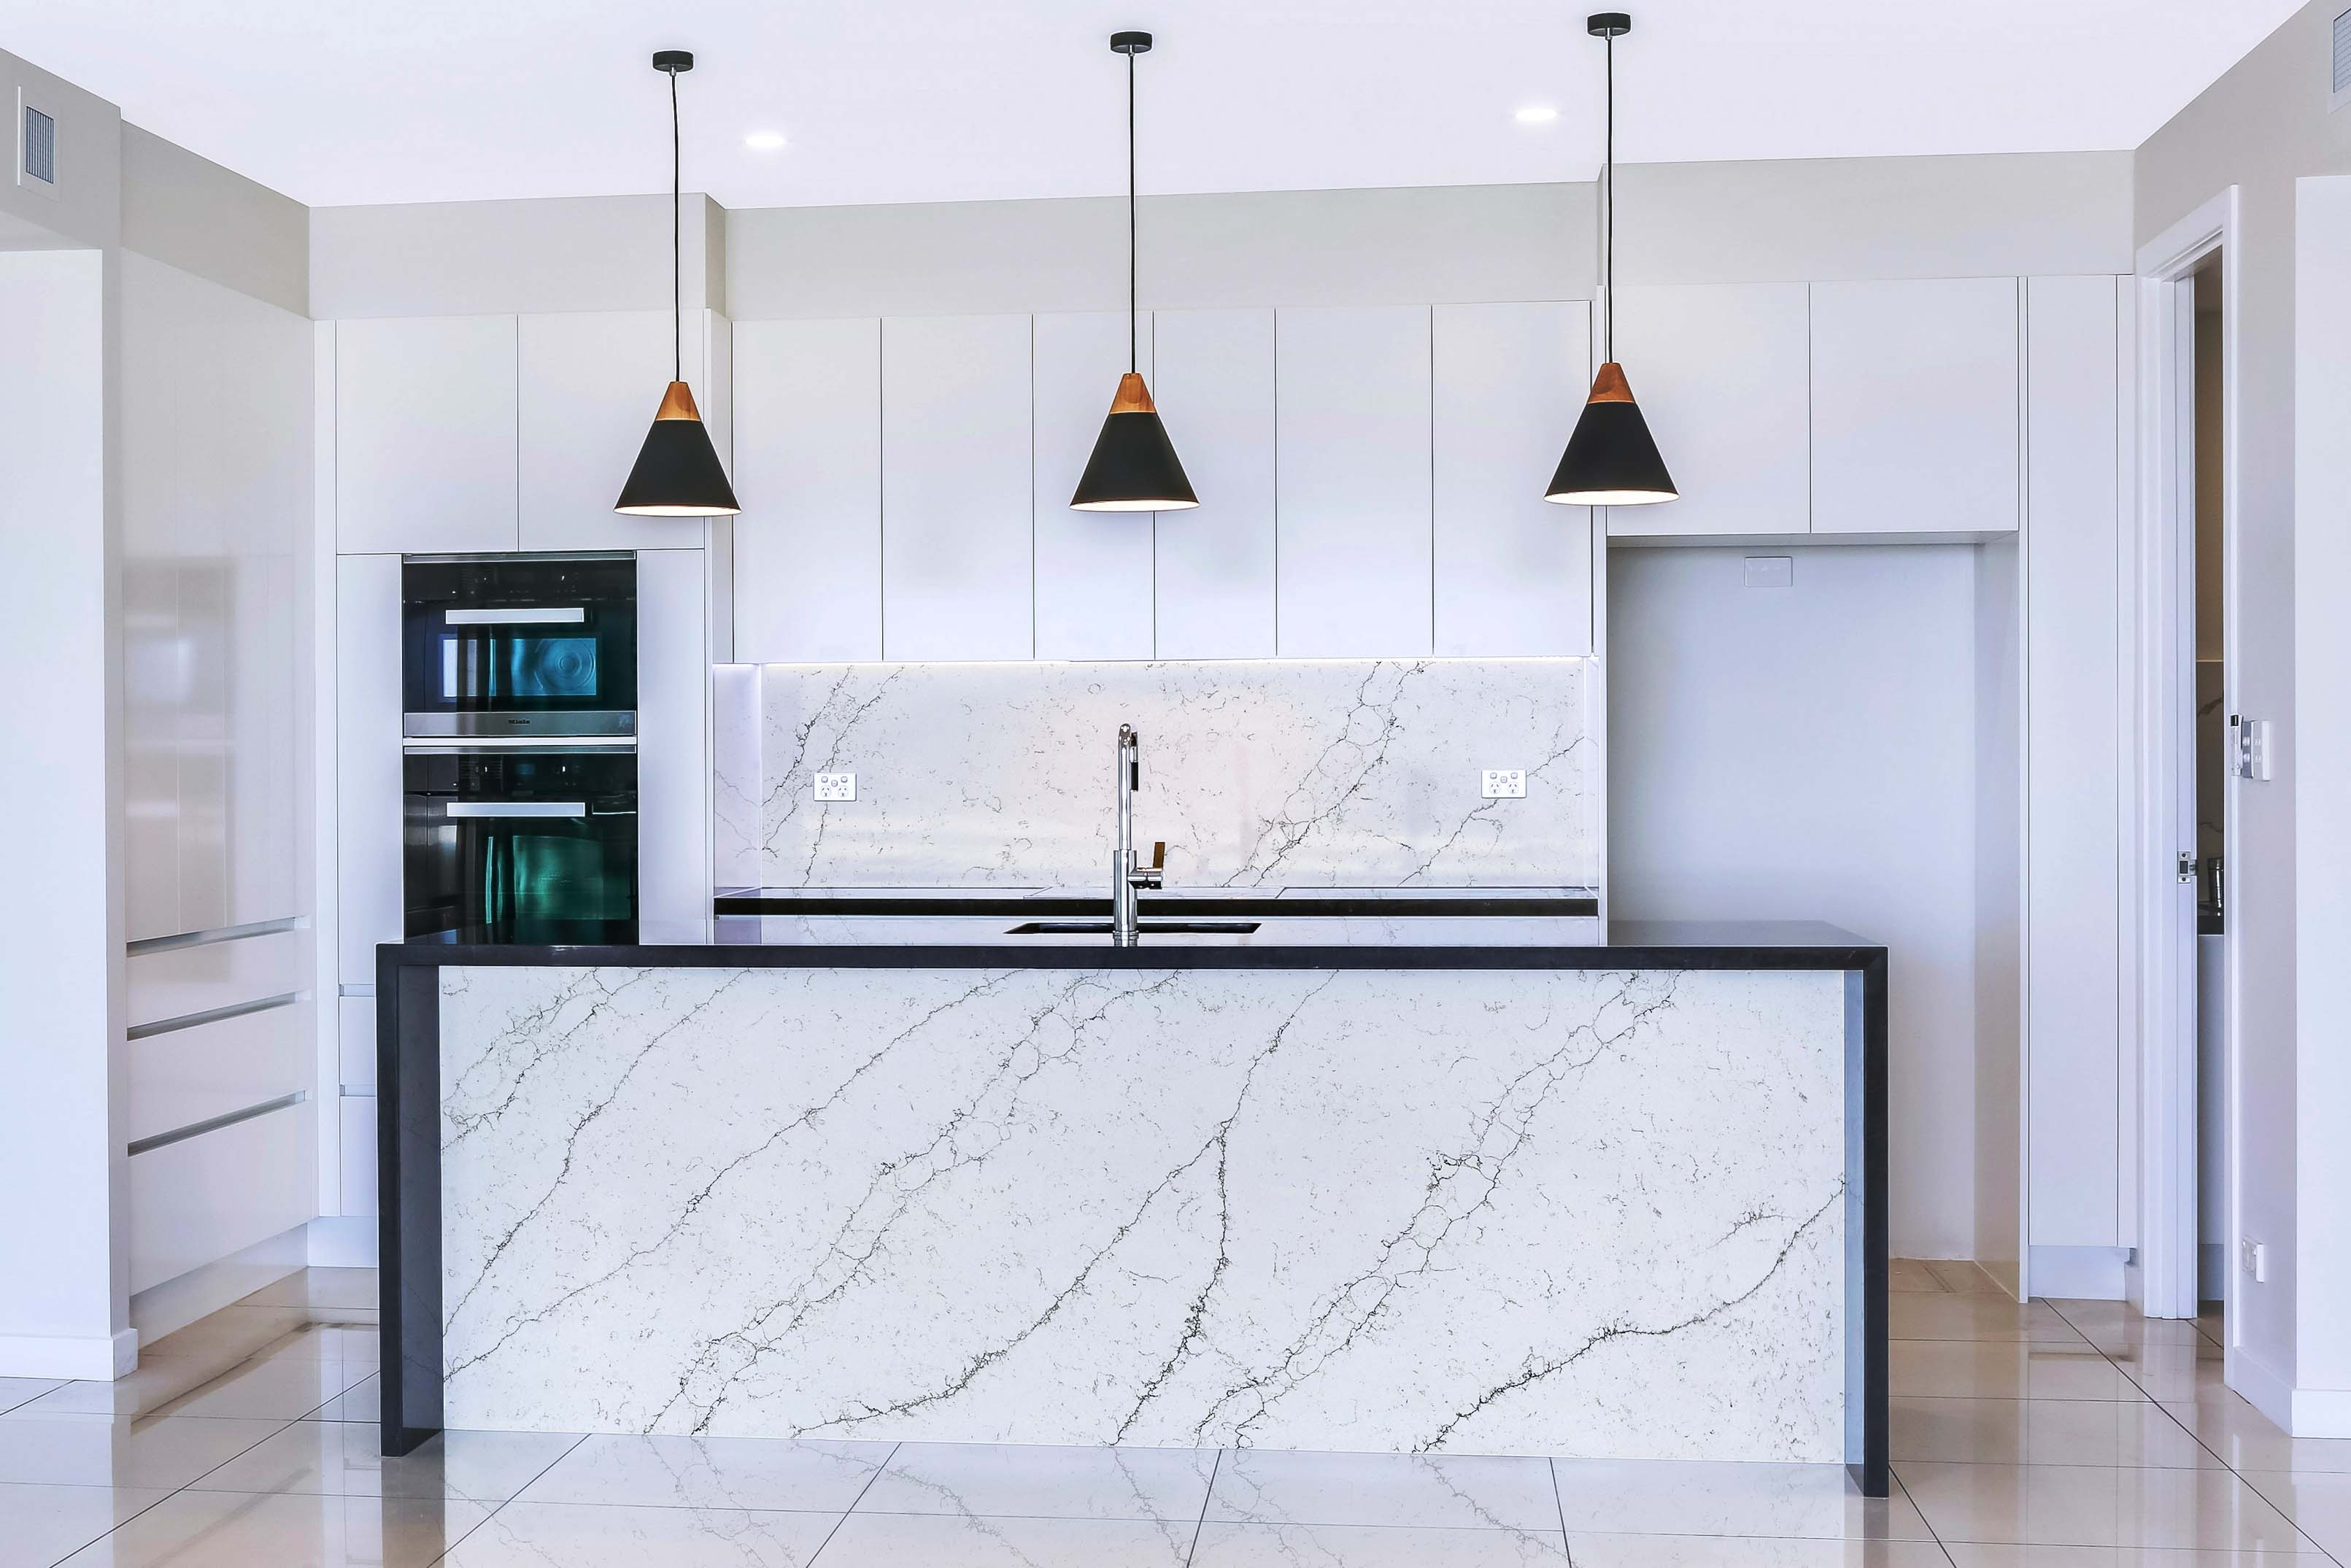 Polished White And Grey Veined Quartz Countertops From China